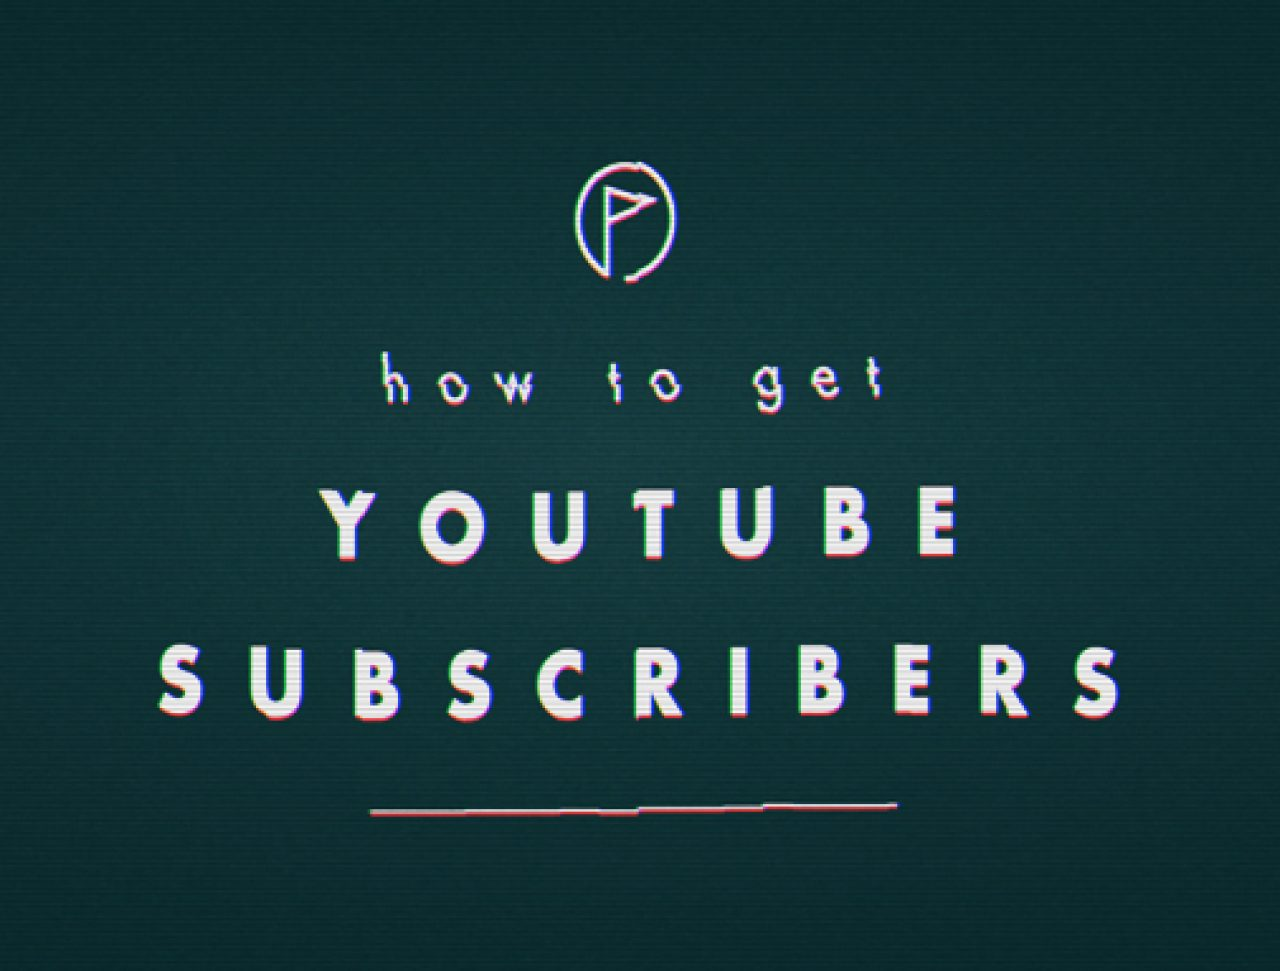 How to make an awesome youtube intro for free